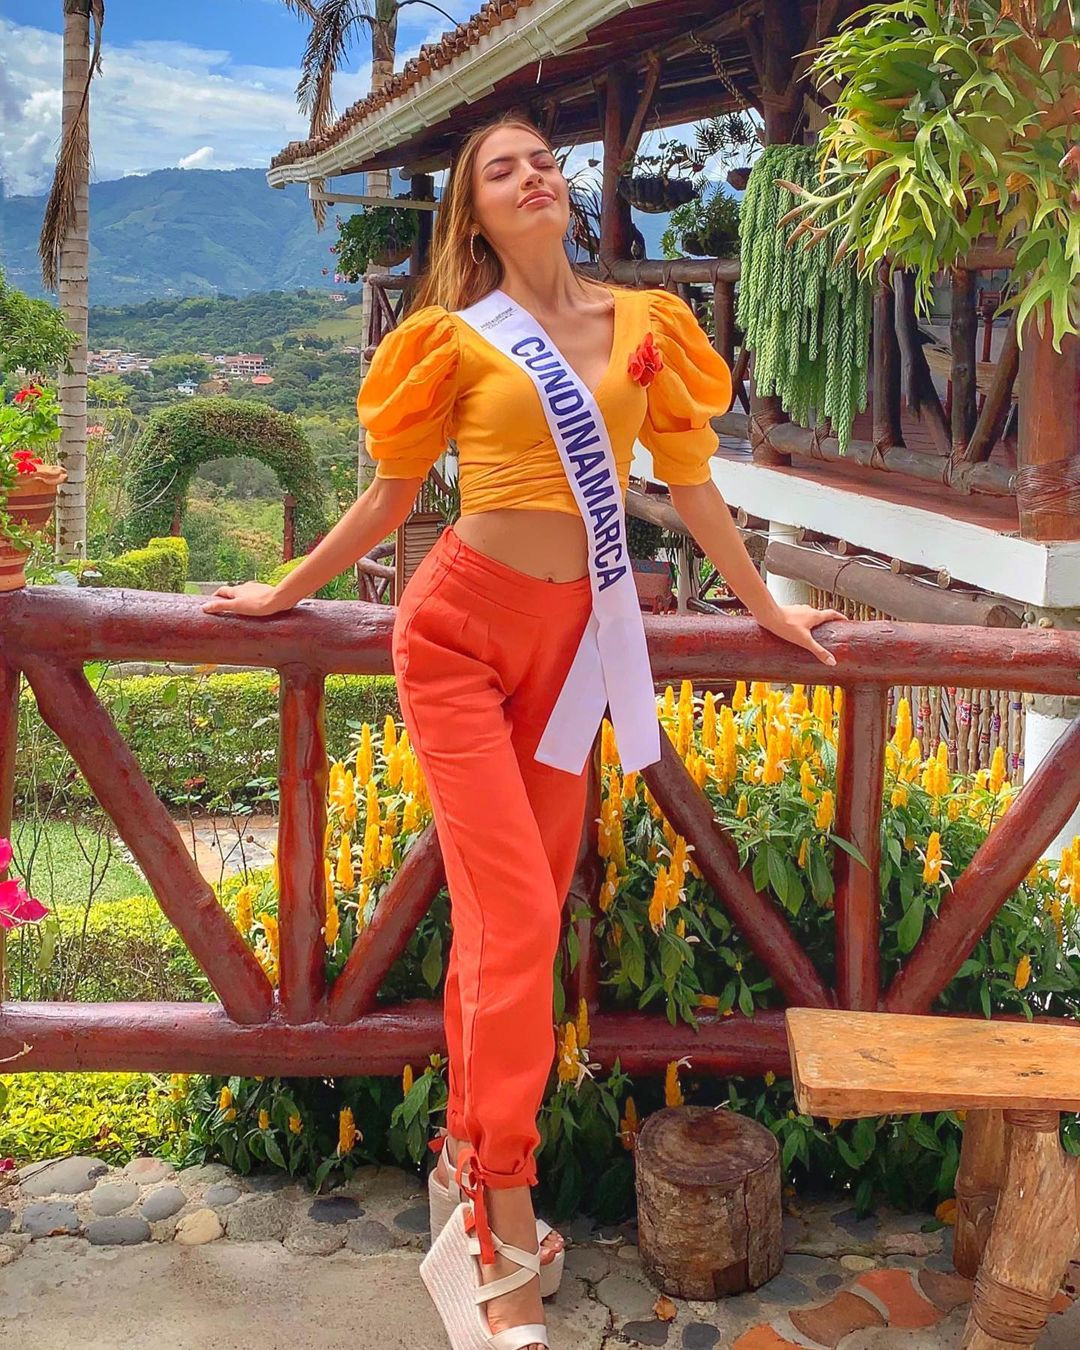 candidatas a miss universe colombia 2021. final: 18 oct. sede: neiva. - Página 24 5fMBsf